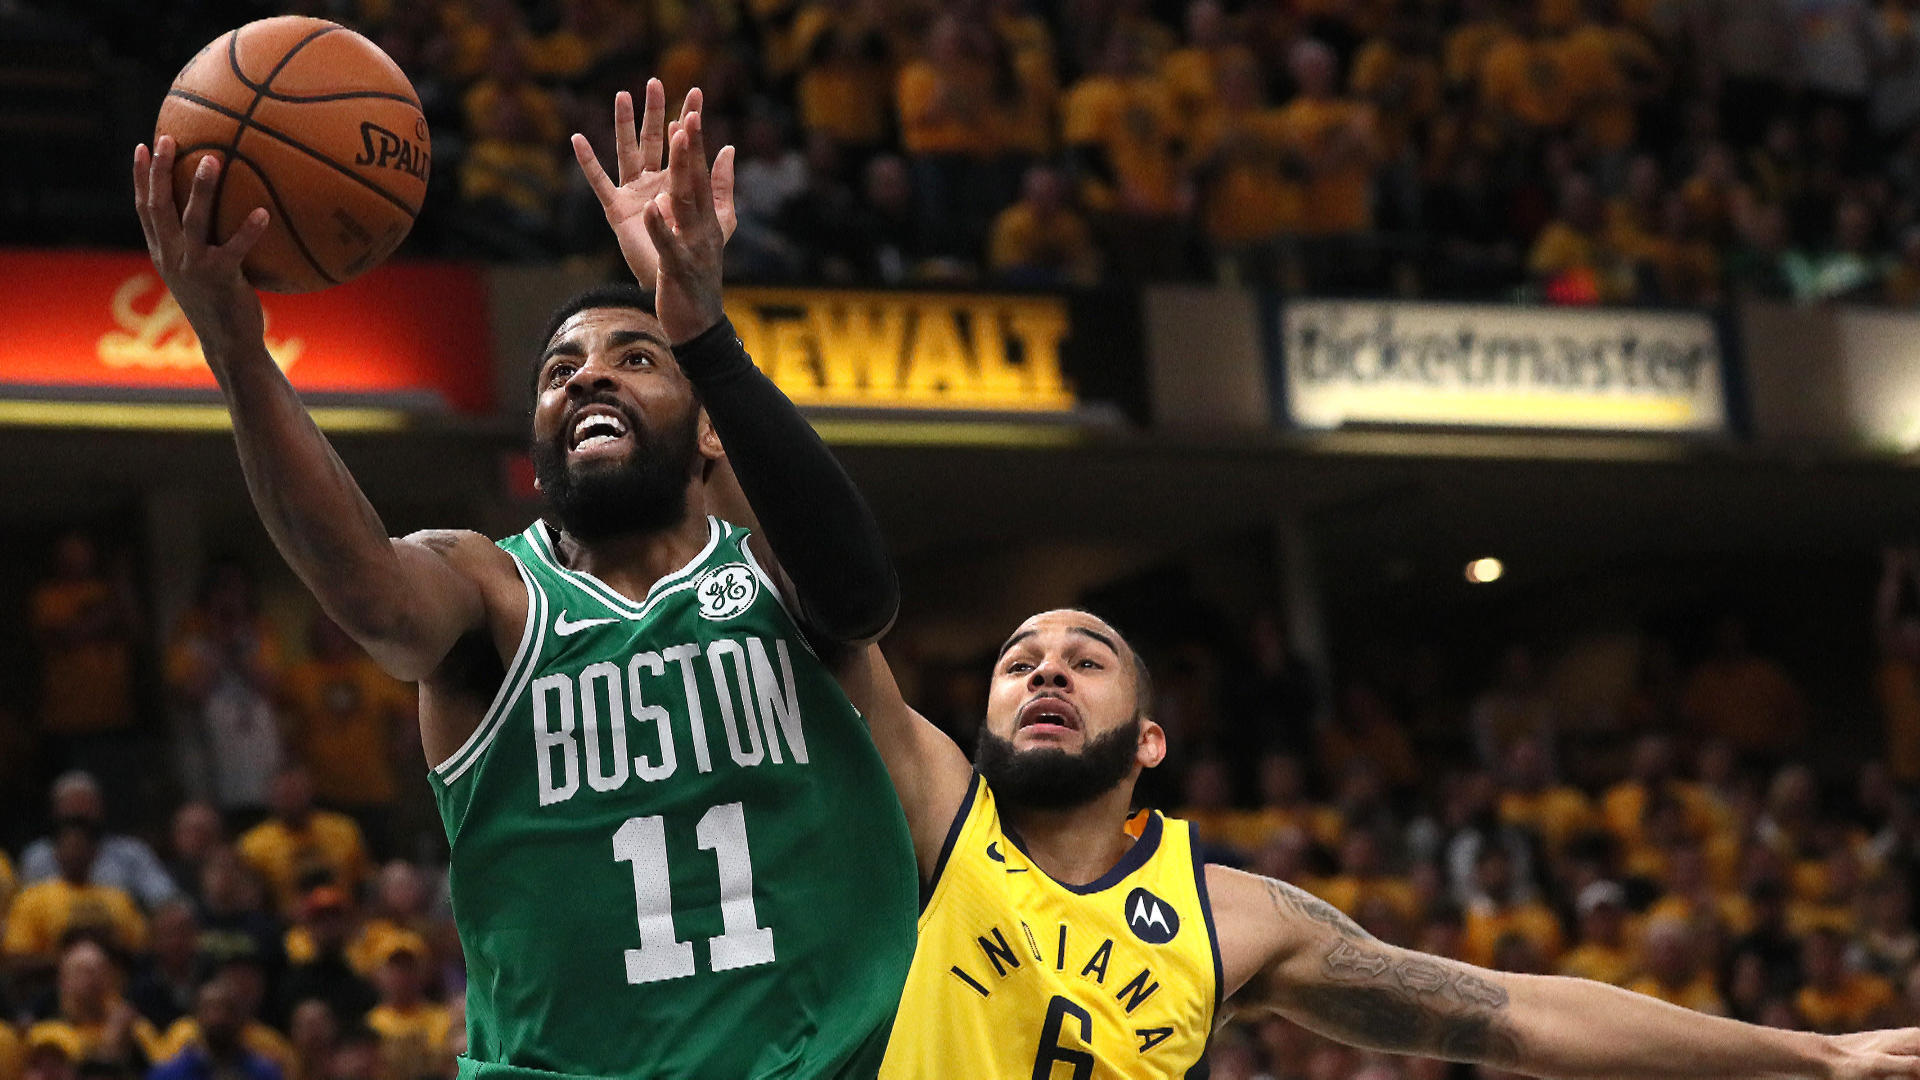 NBA Playoffs 2019: Celtics vs. Pacers odds, picks, Game 4 predictions from red-hot model on 77-62 roll